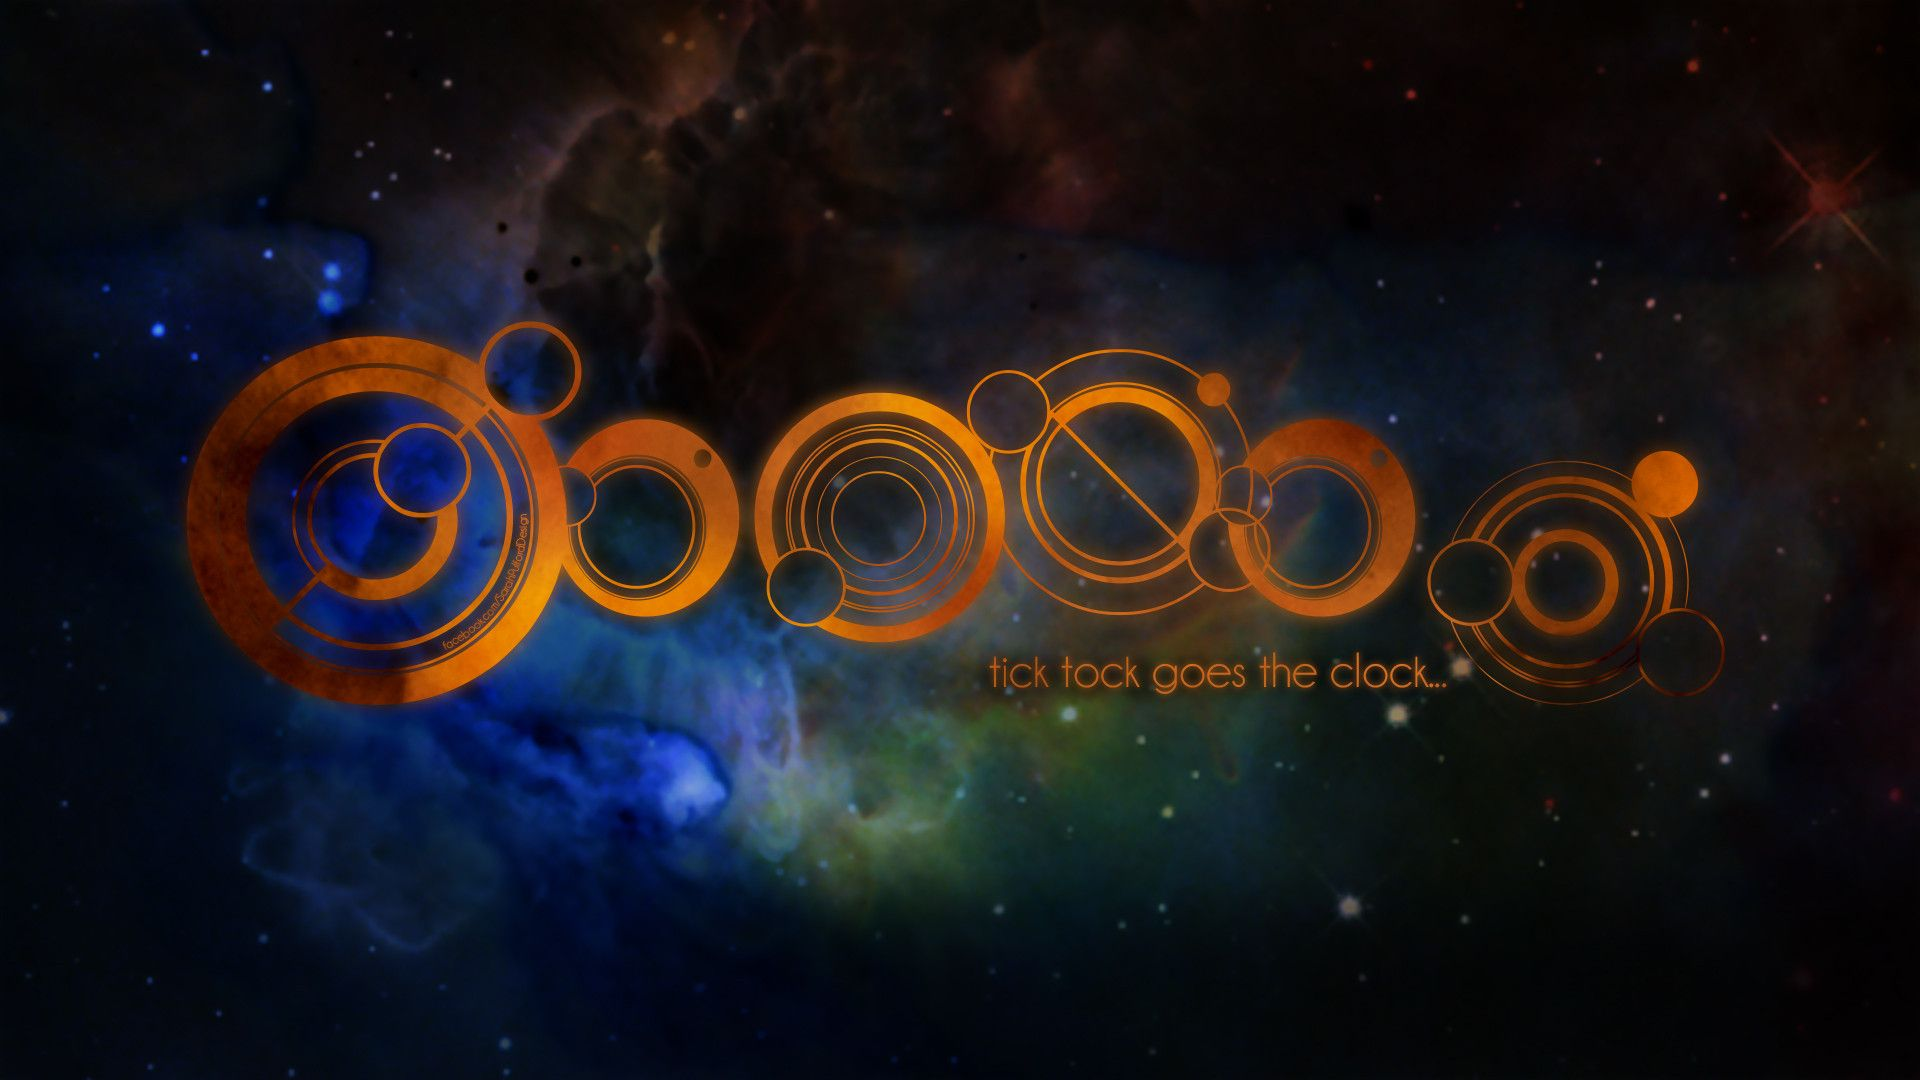 Doctor Who Wallpaper Wallpapers Fandom Superwholock